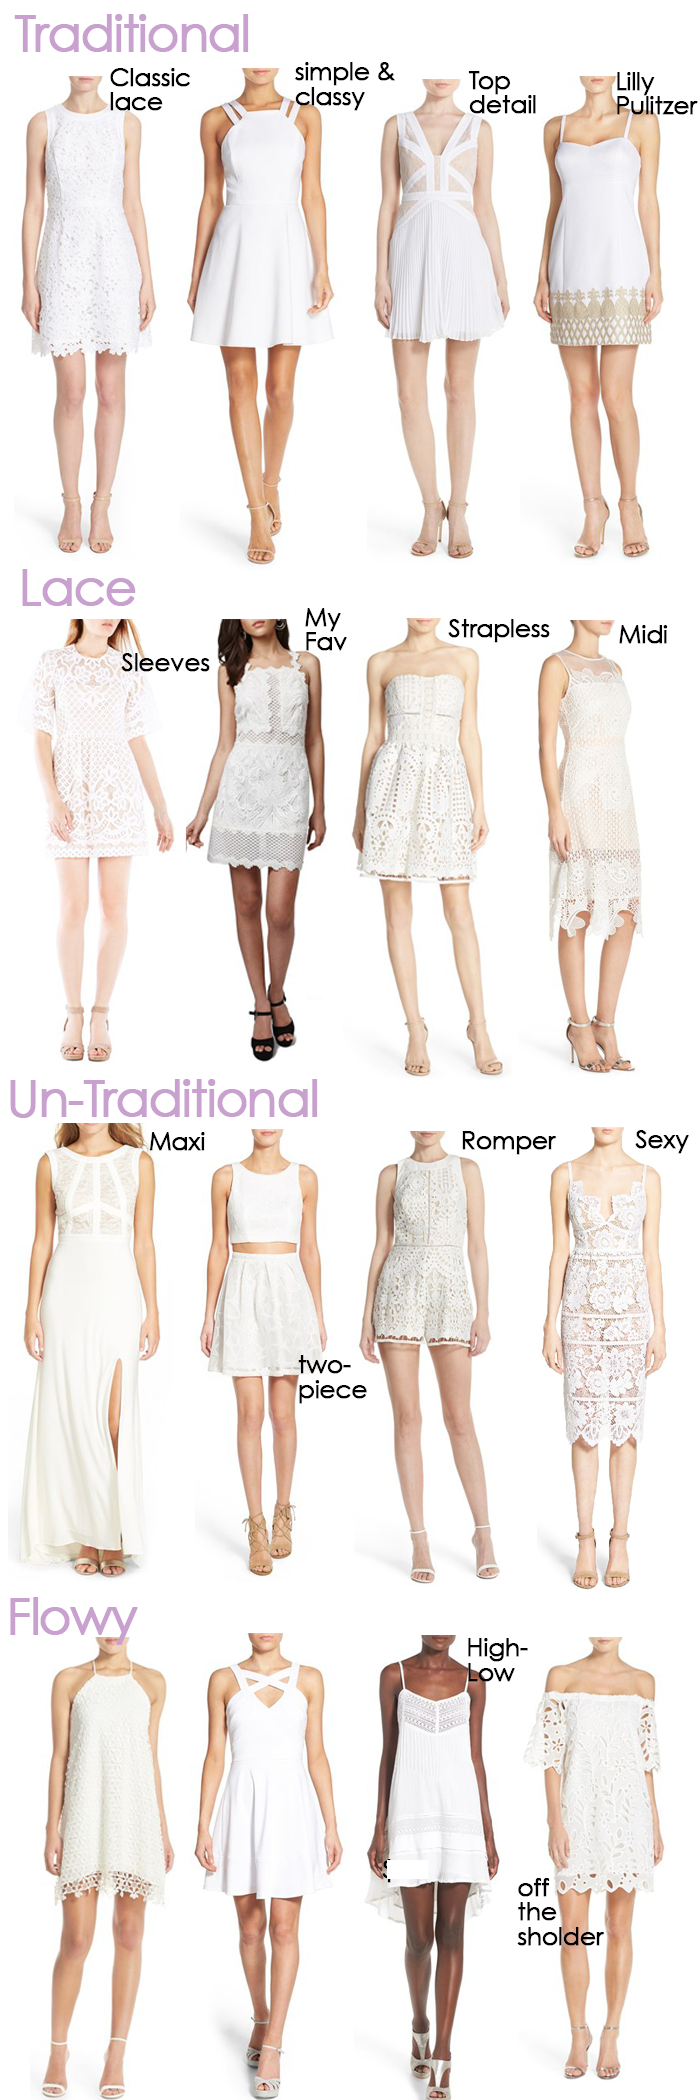 Perfect White Dresses For Graduation Or Wedding Events Stylish Sassy Classy White Dresses Graduation Graduation Outfit Graduation Dress College [ 2100 x 700 Pixel ]